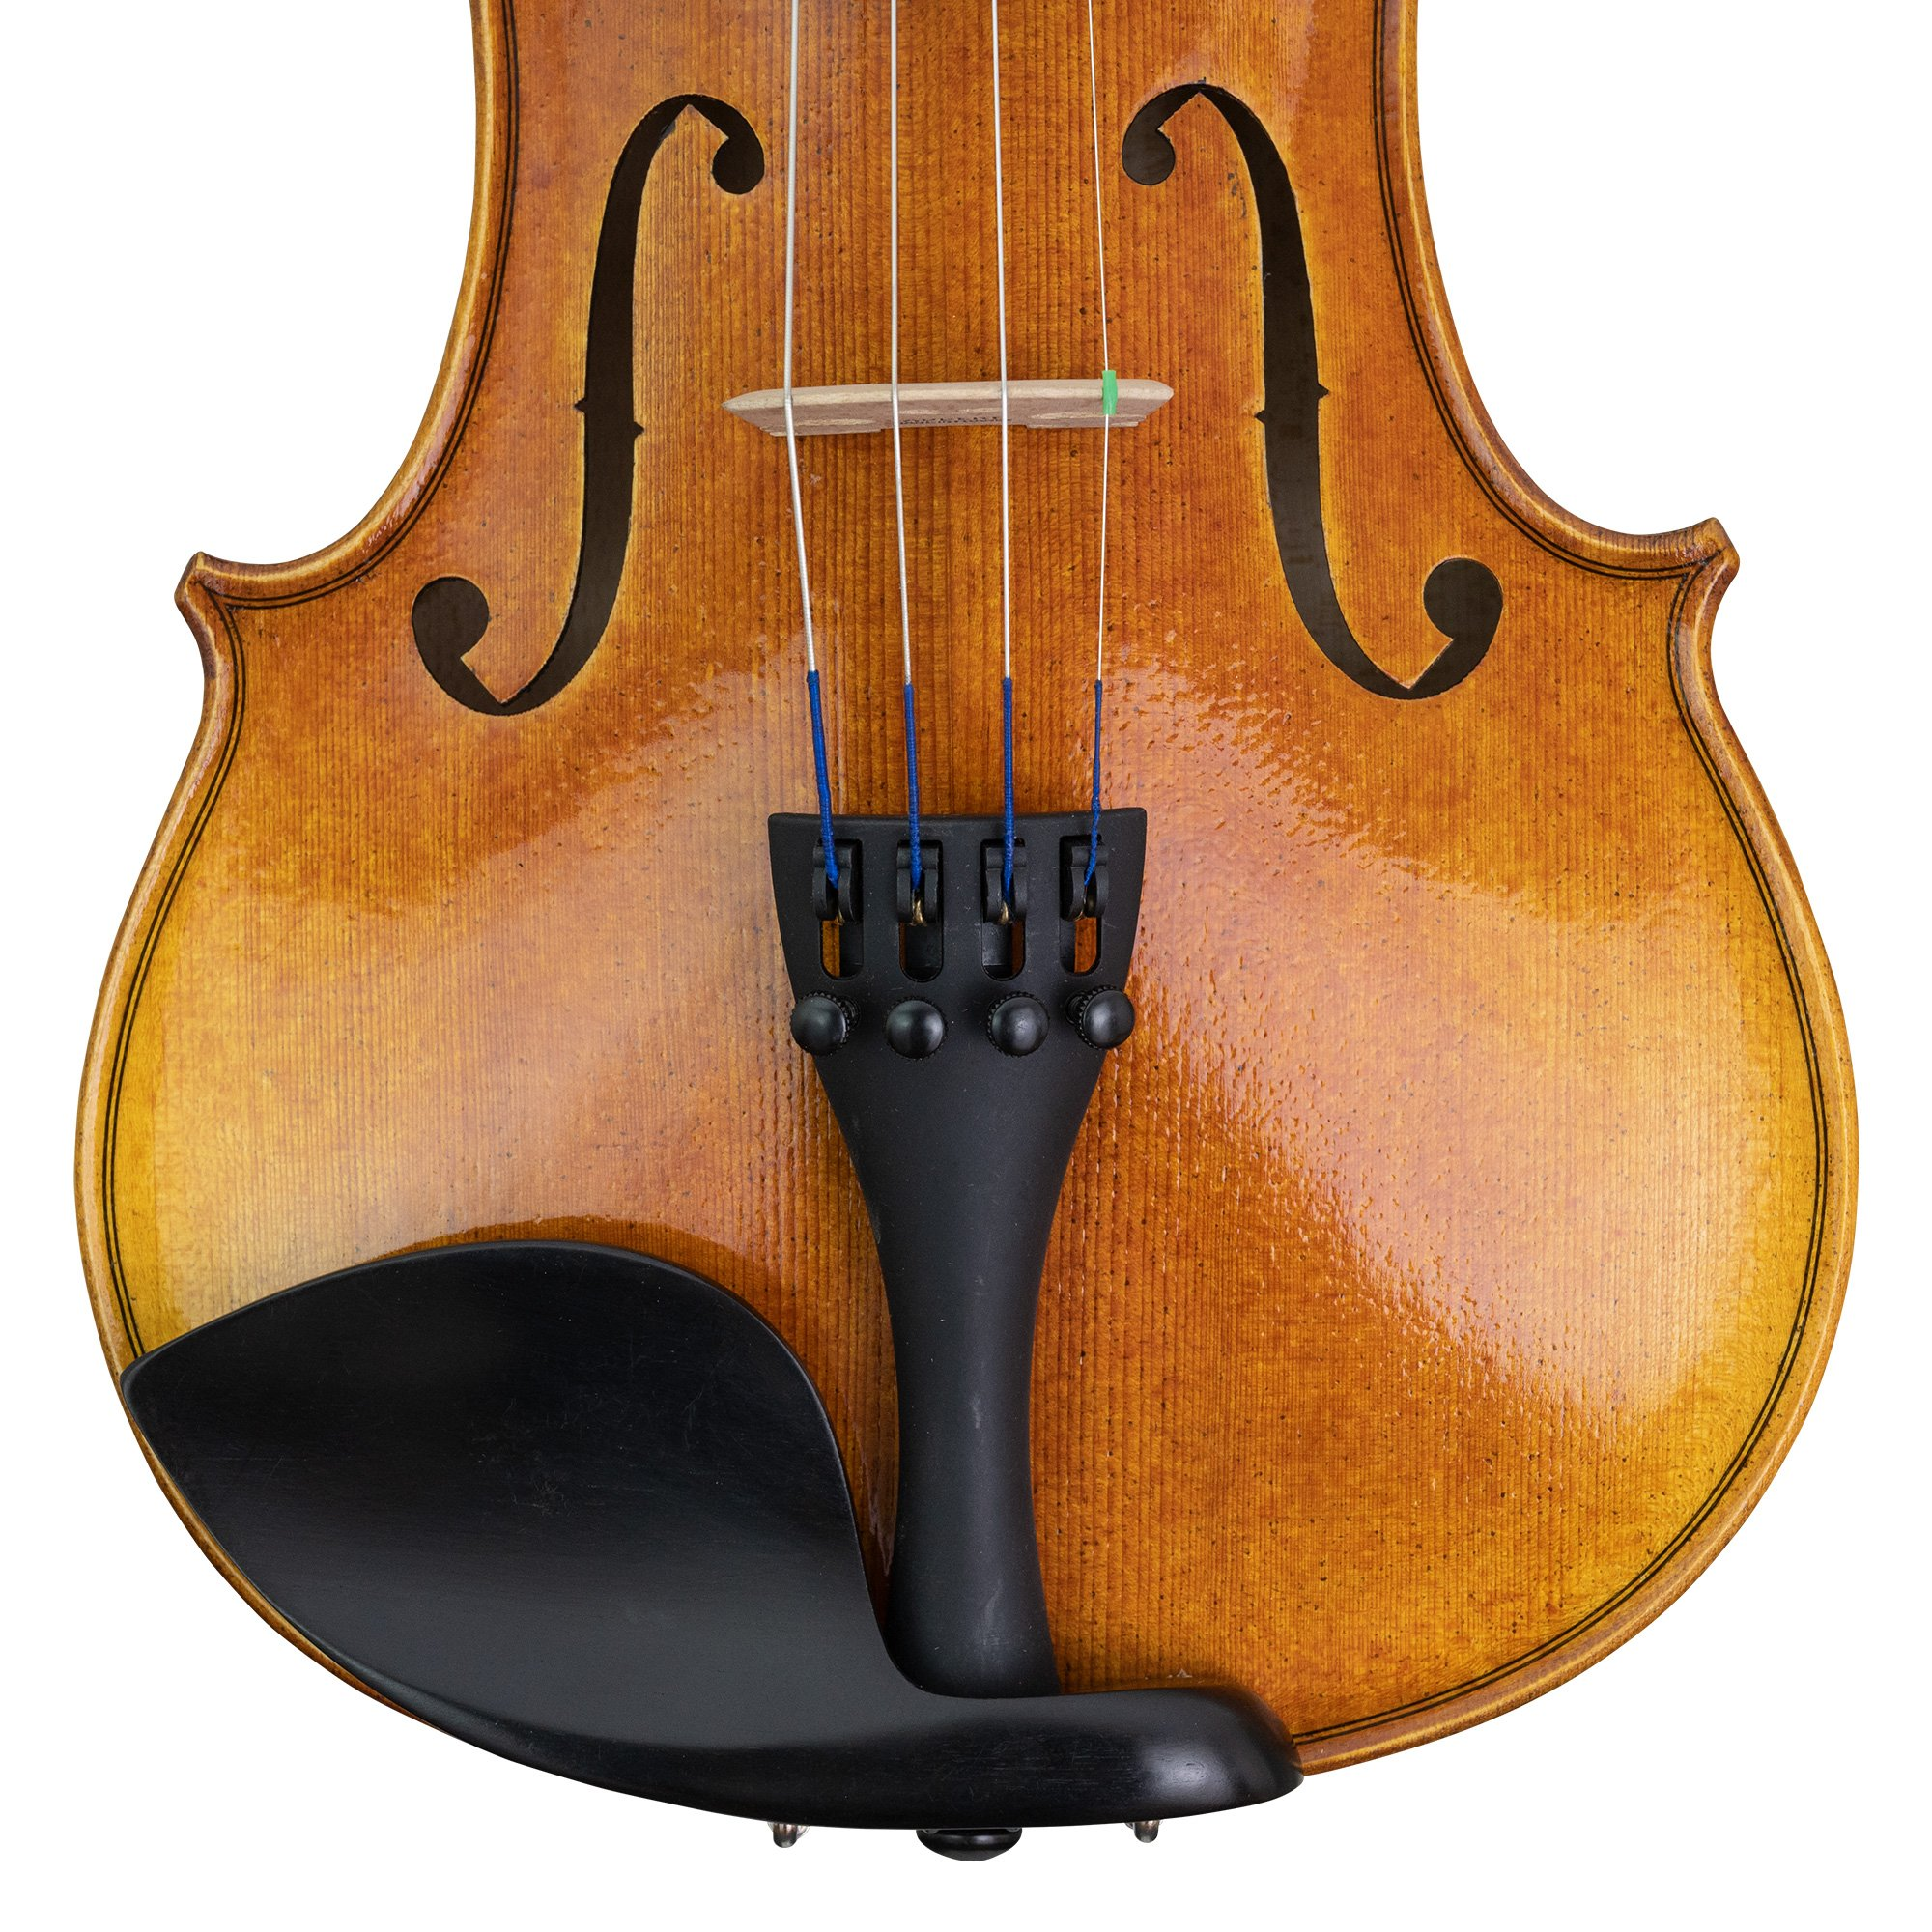 CLEARANCE Vitacek Concert Series Violin Outfit in action